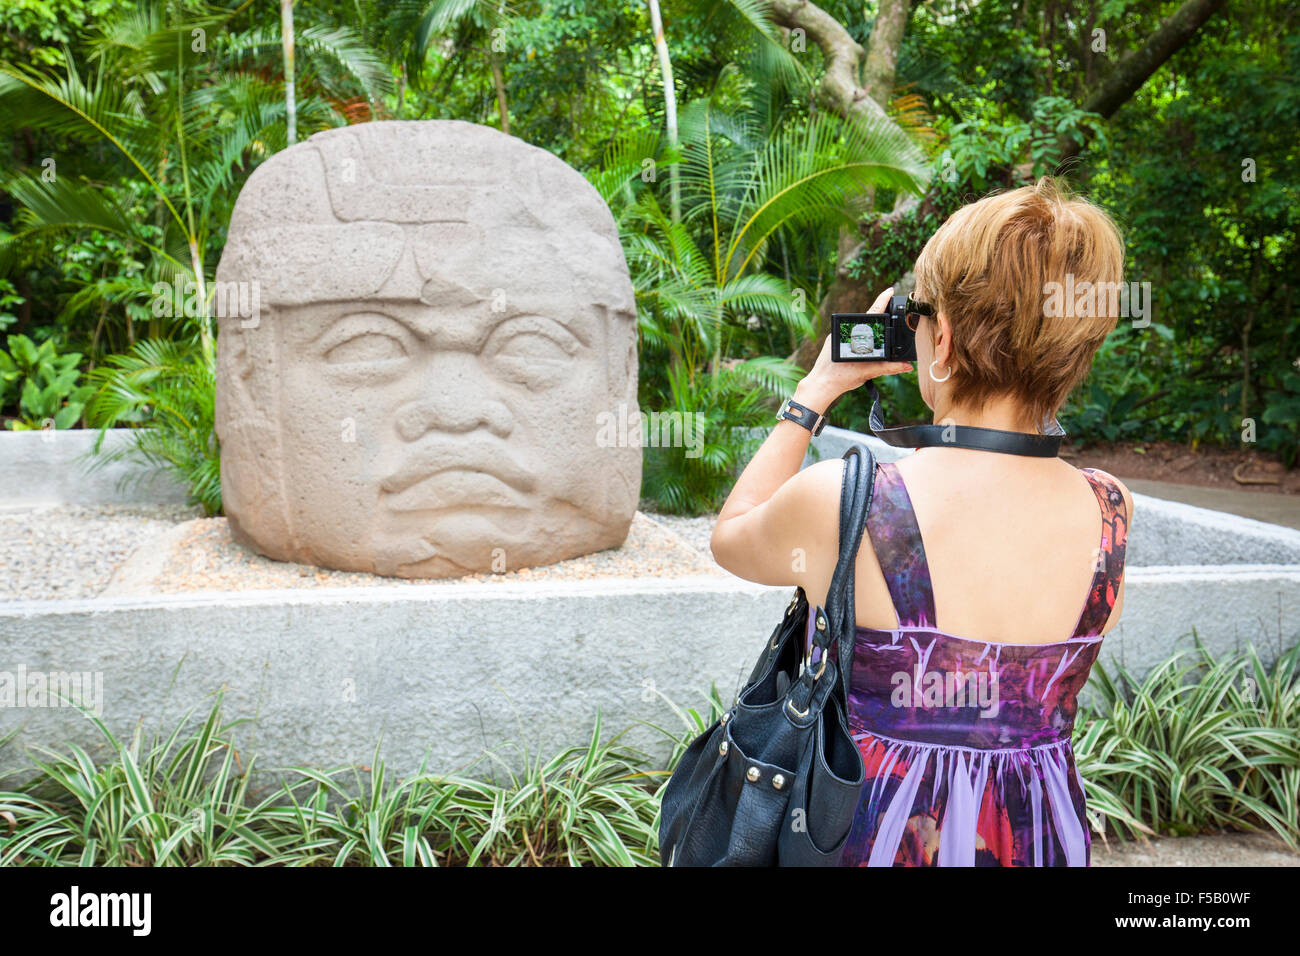 Female tourist photographs the Olmec stone carving Colossal Head in La Venta park, Villahermosa, Tabasco, Mexico. - Stock Image